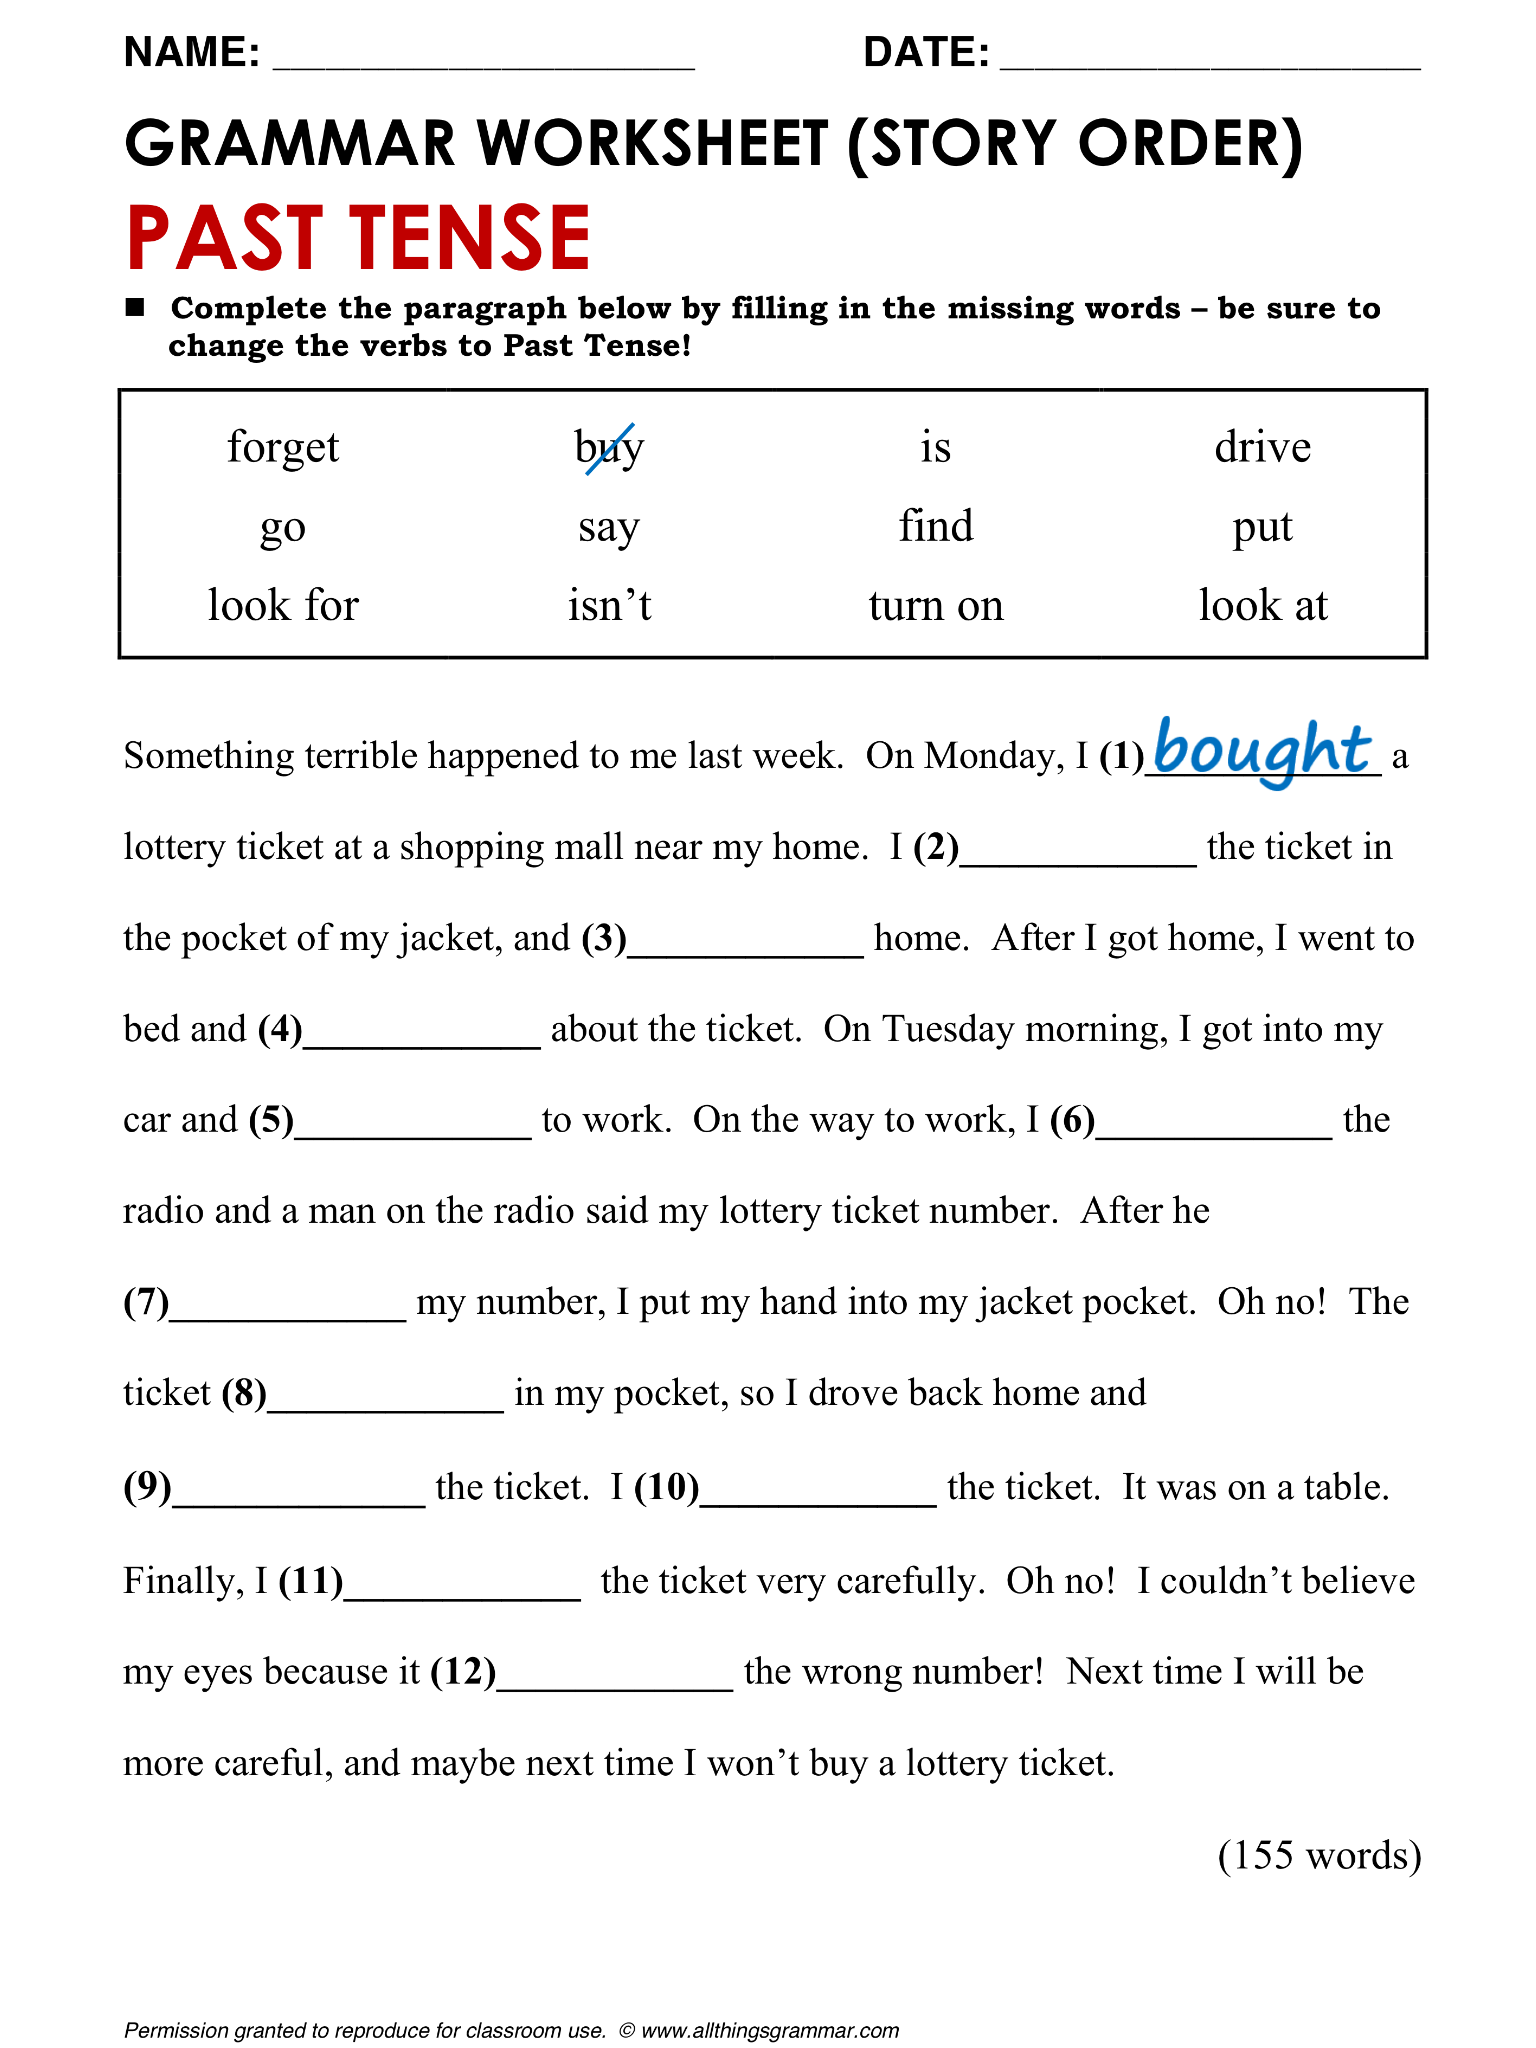 worksheet Simple Past Tense Worksheets english grammar past simple www allthingsgrammar compast worksheet tense